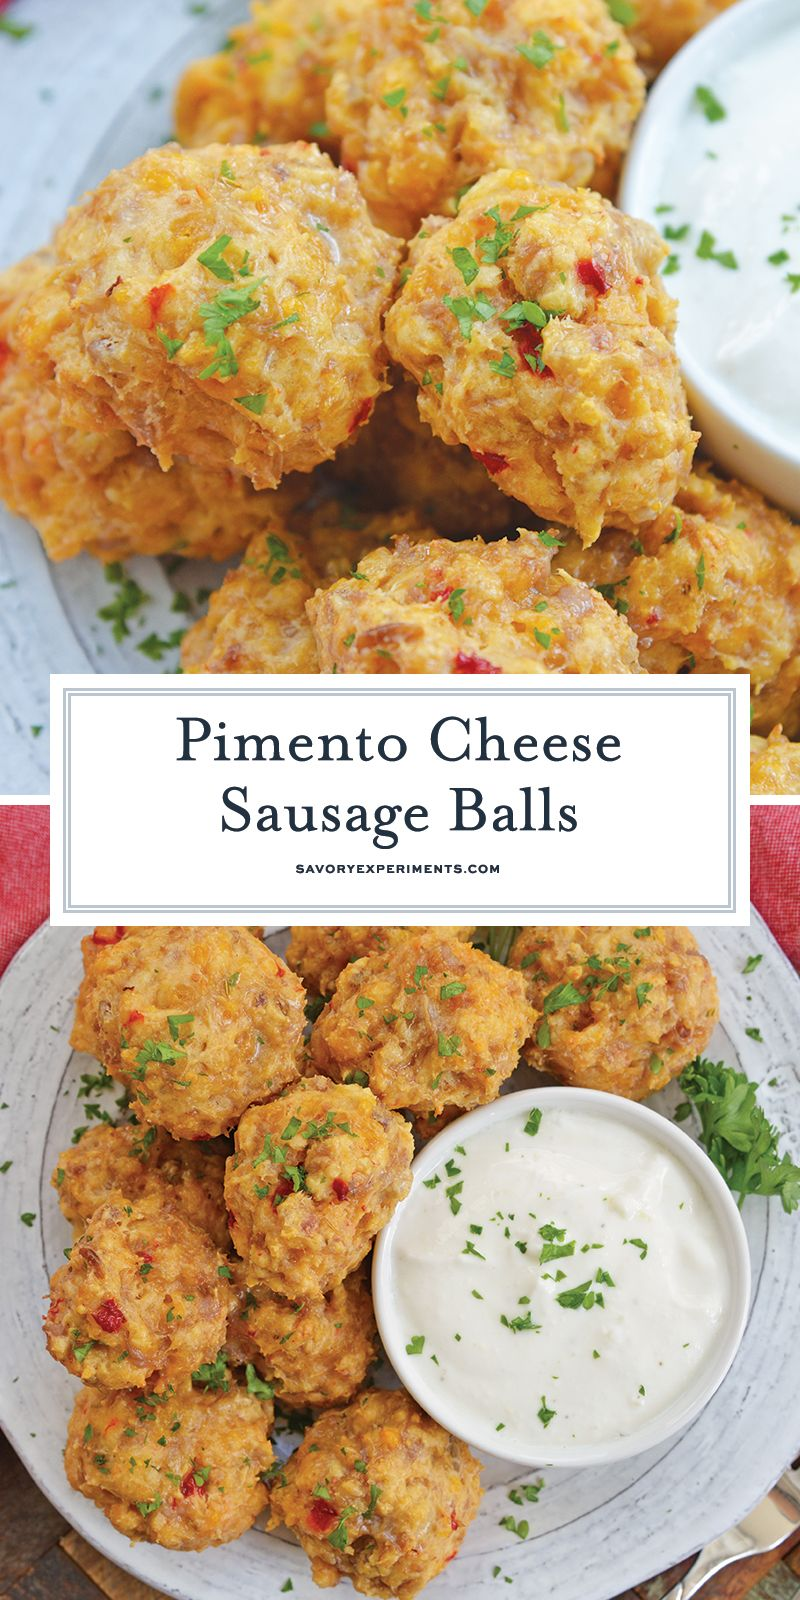 EASY Pimento Cheese Sausage Balls Recipe - BEST Sausage Balls